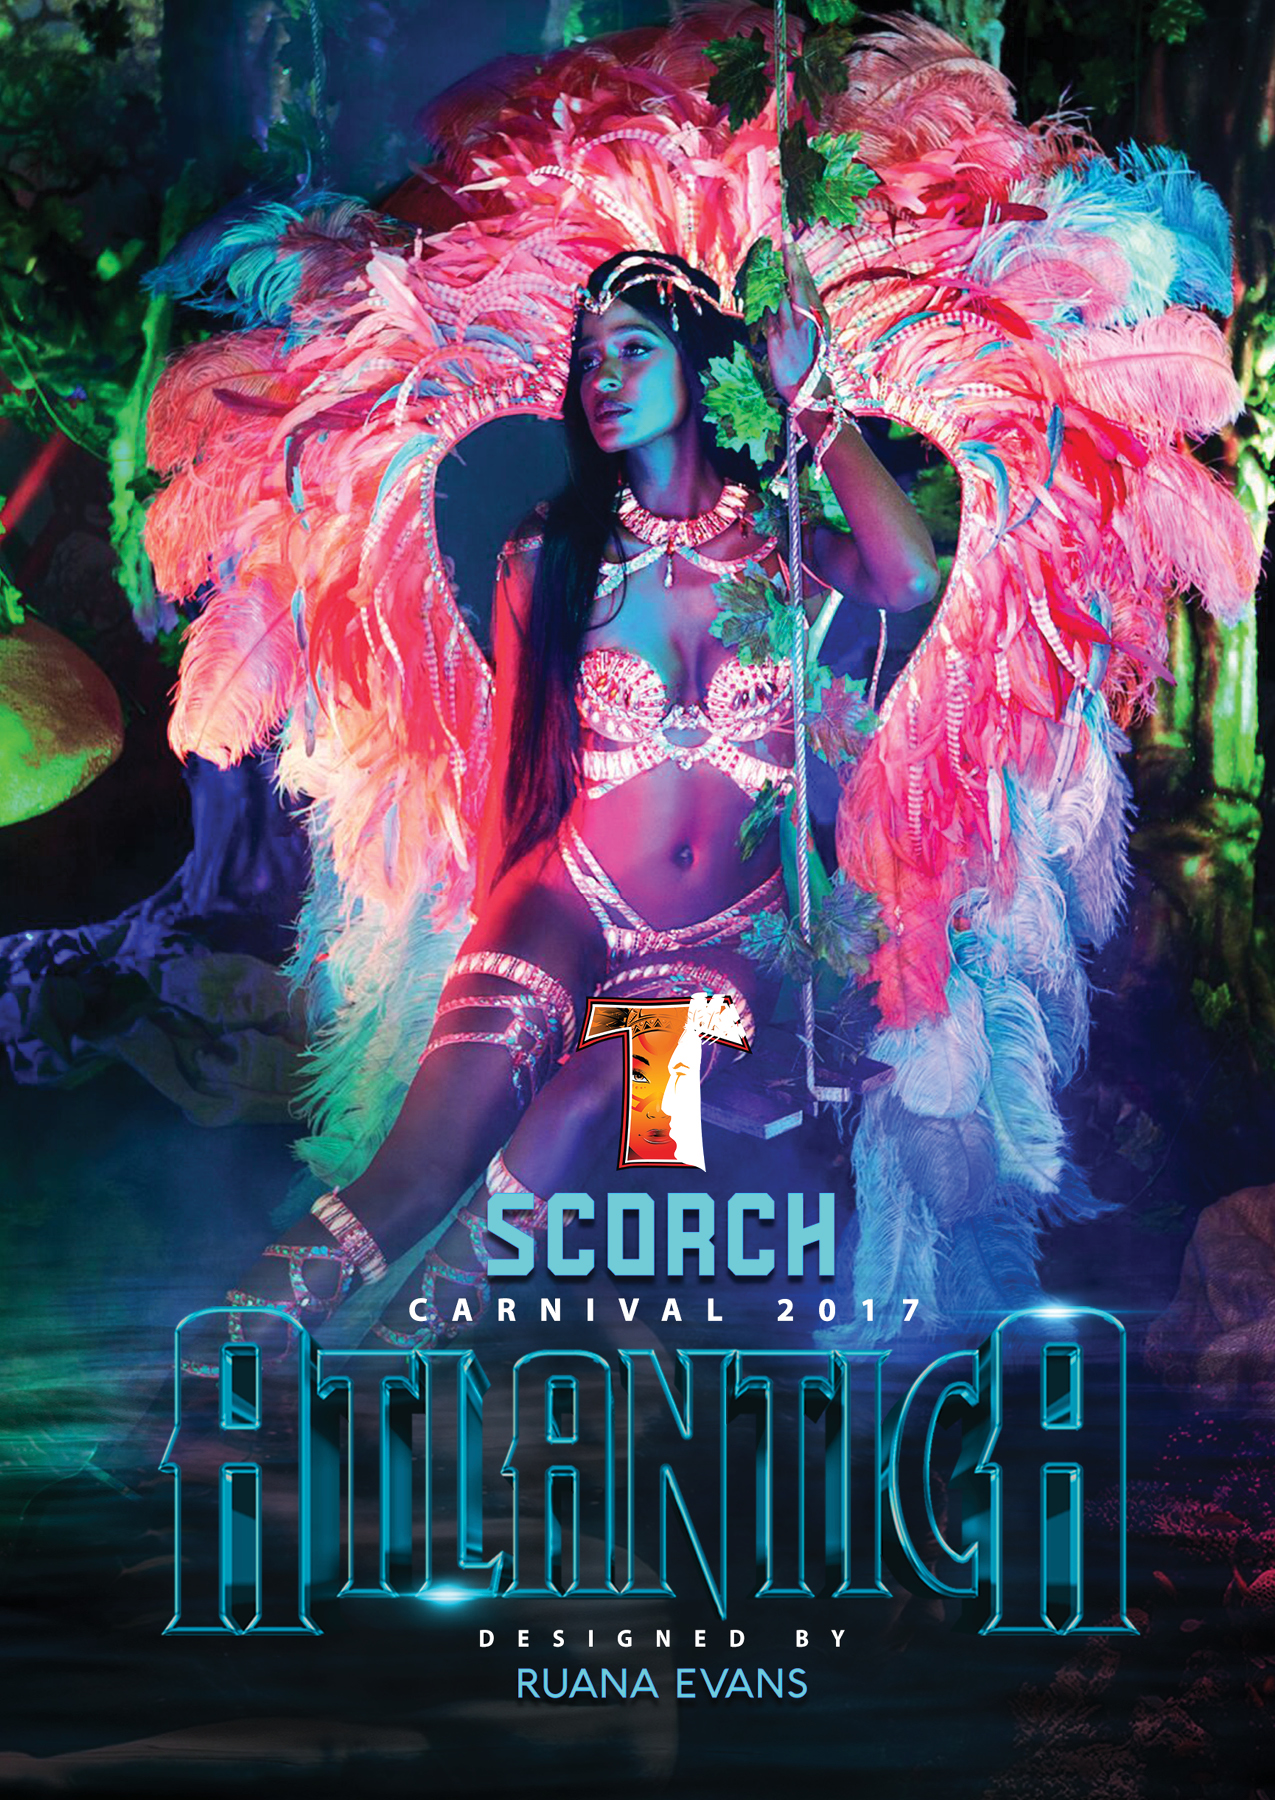 SCORCH ISSUE 49 - Pages27.jpg